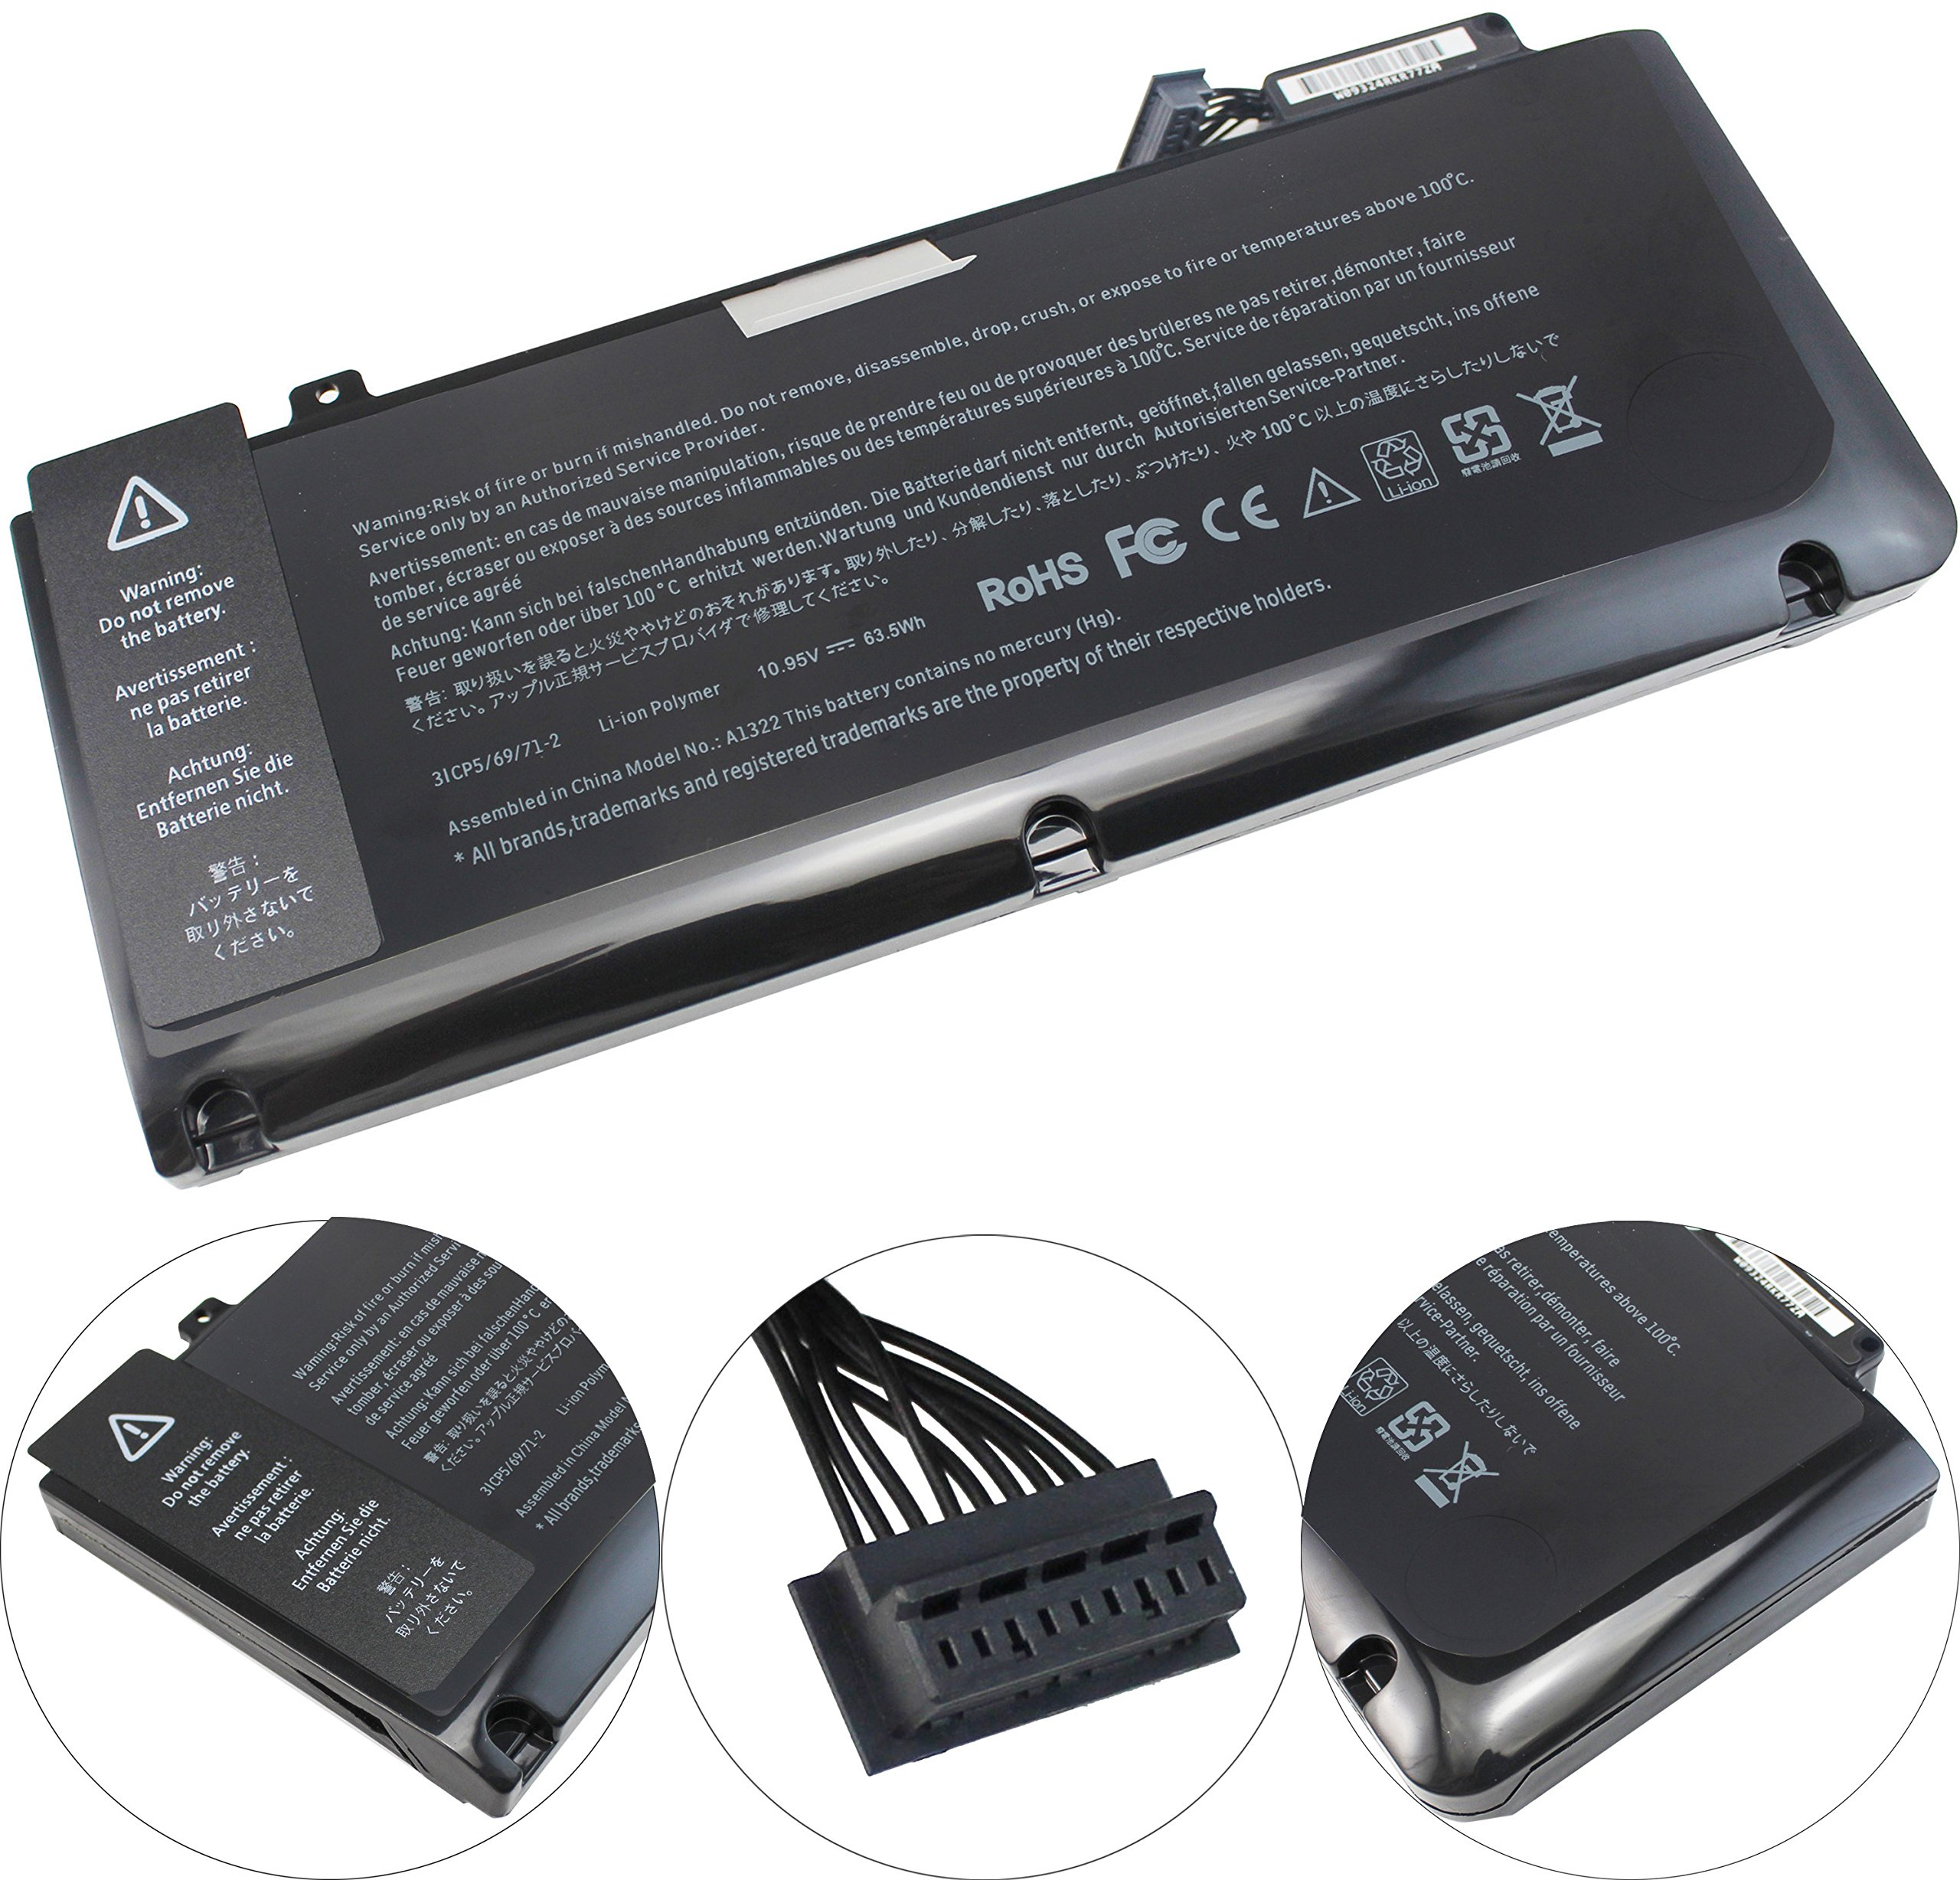 BATURU A1322 Laptop Battery for MacBook Pro 13 inch A1322 A1278 (mid 2009 2010 Early 2011 Late 2012 Version) MB990LL/A MC724LL/A MD314LL/A 020-6547-A - 12 Month Warranty by BATURU (Image #2)